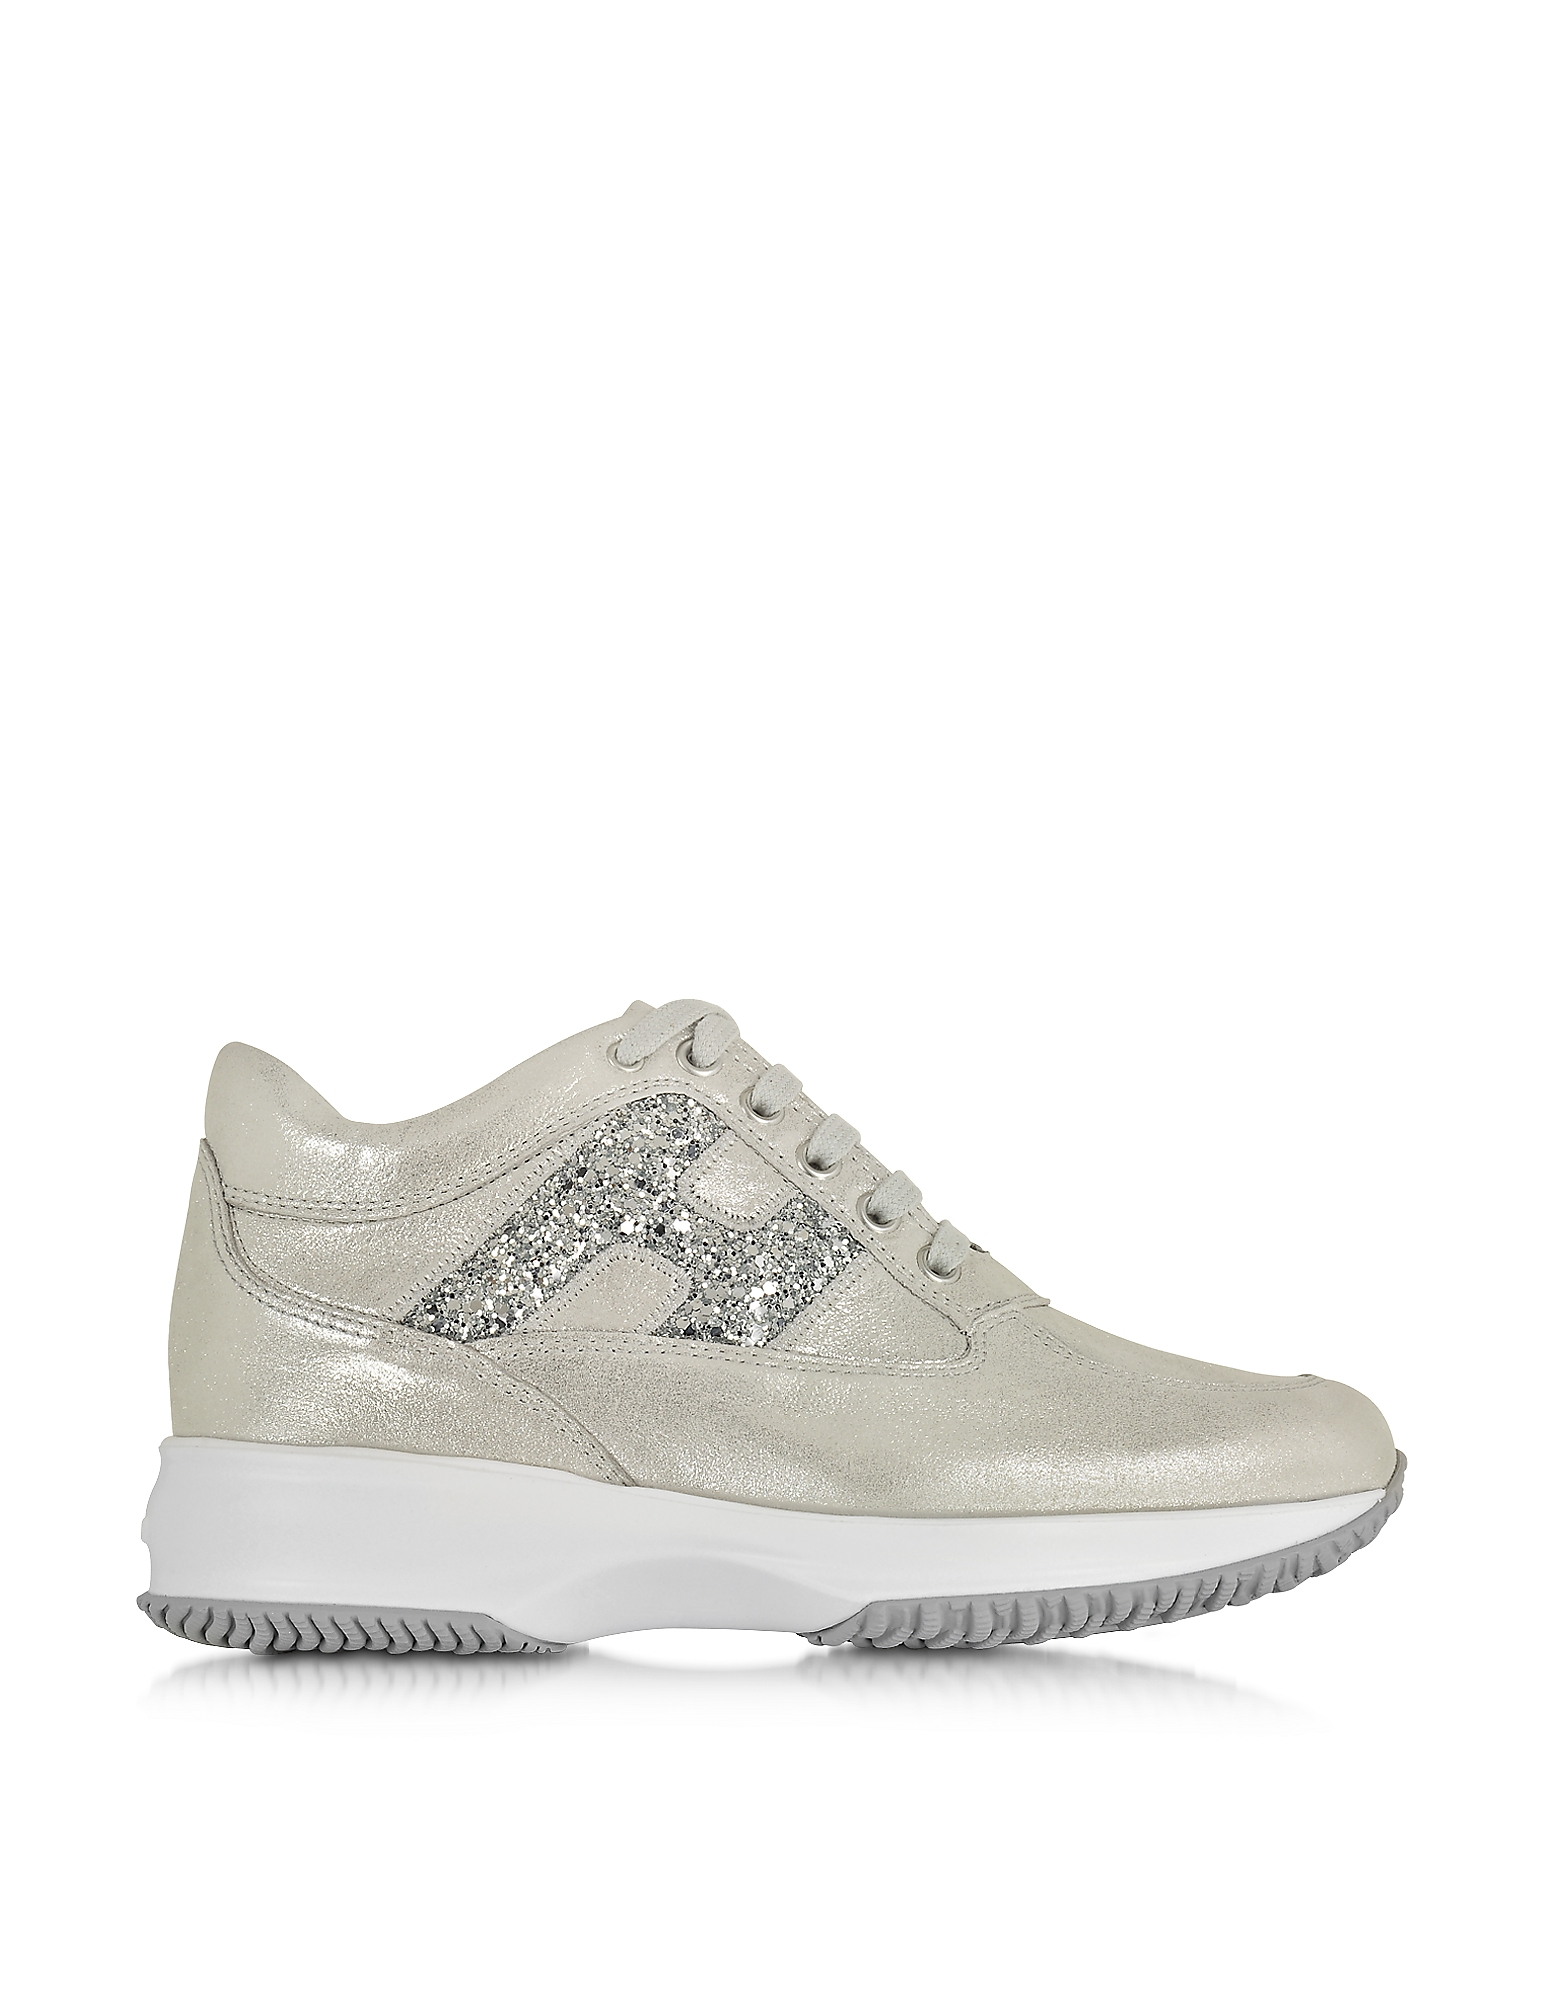 hogan silver suede glitter wedge sneaker in gray lyst. Black Bedroom Furniture Sets. Home Design Ideas